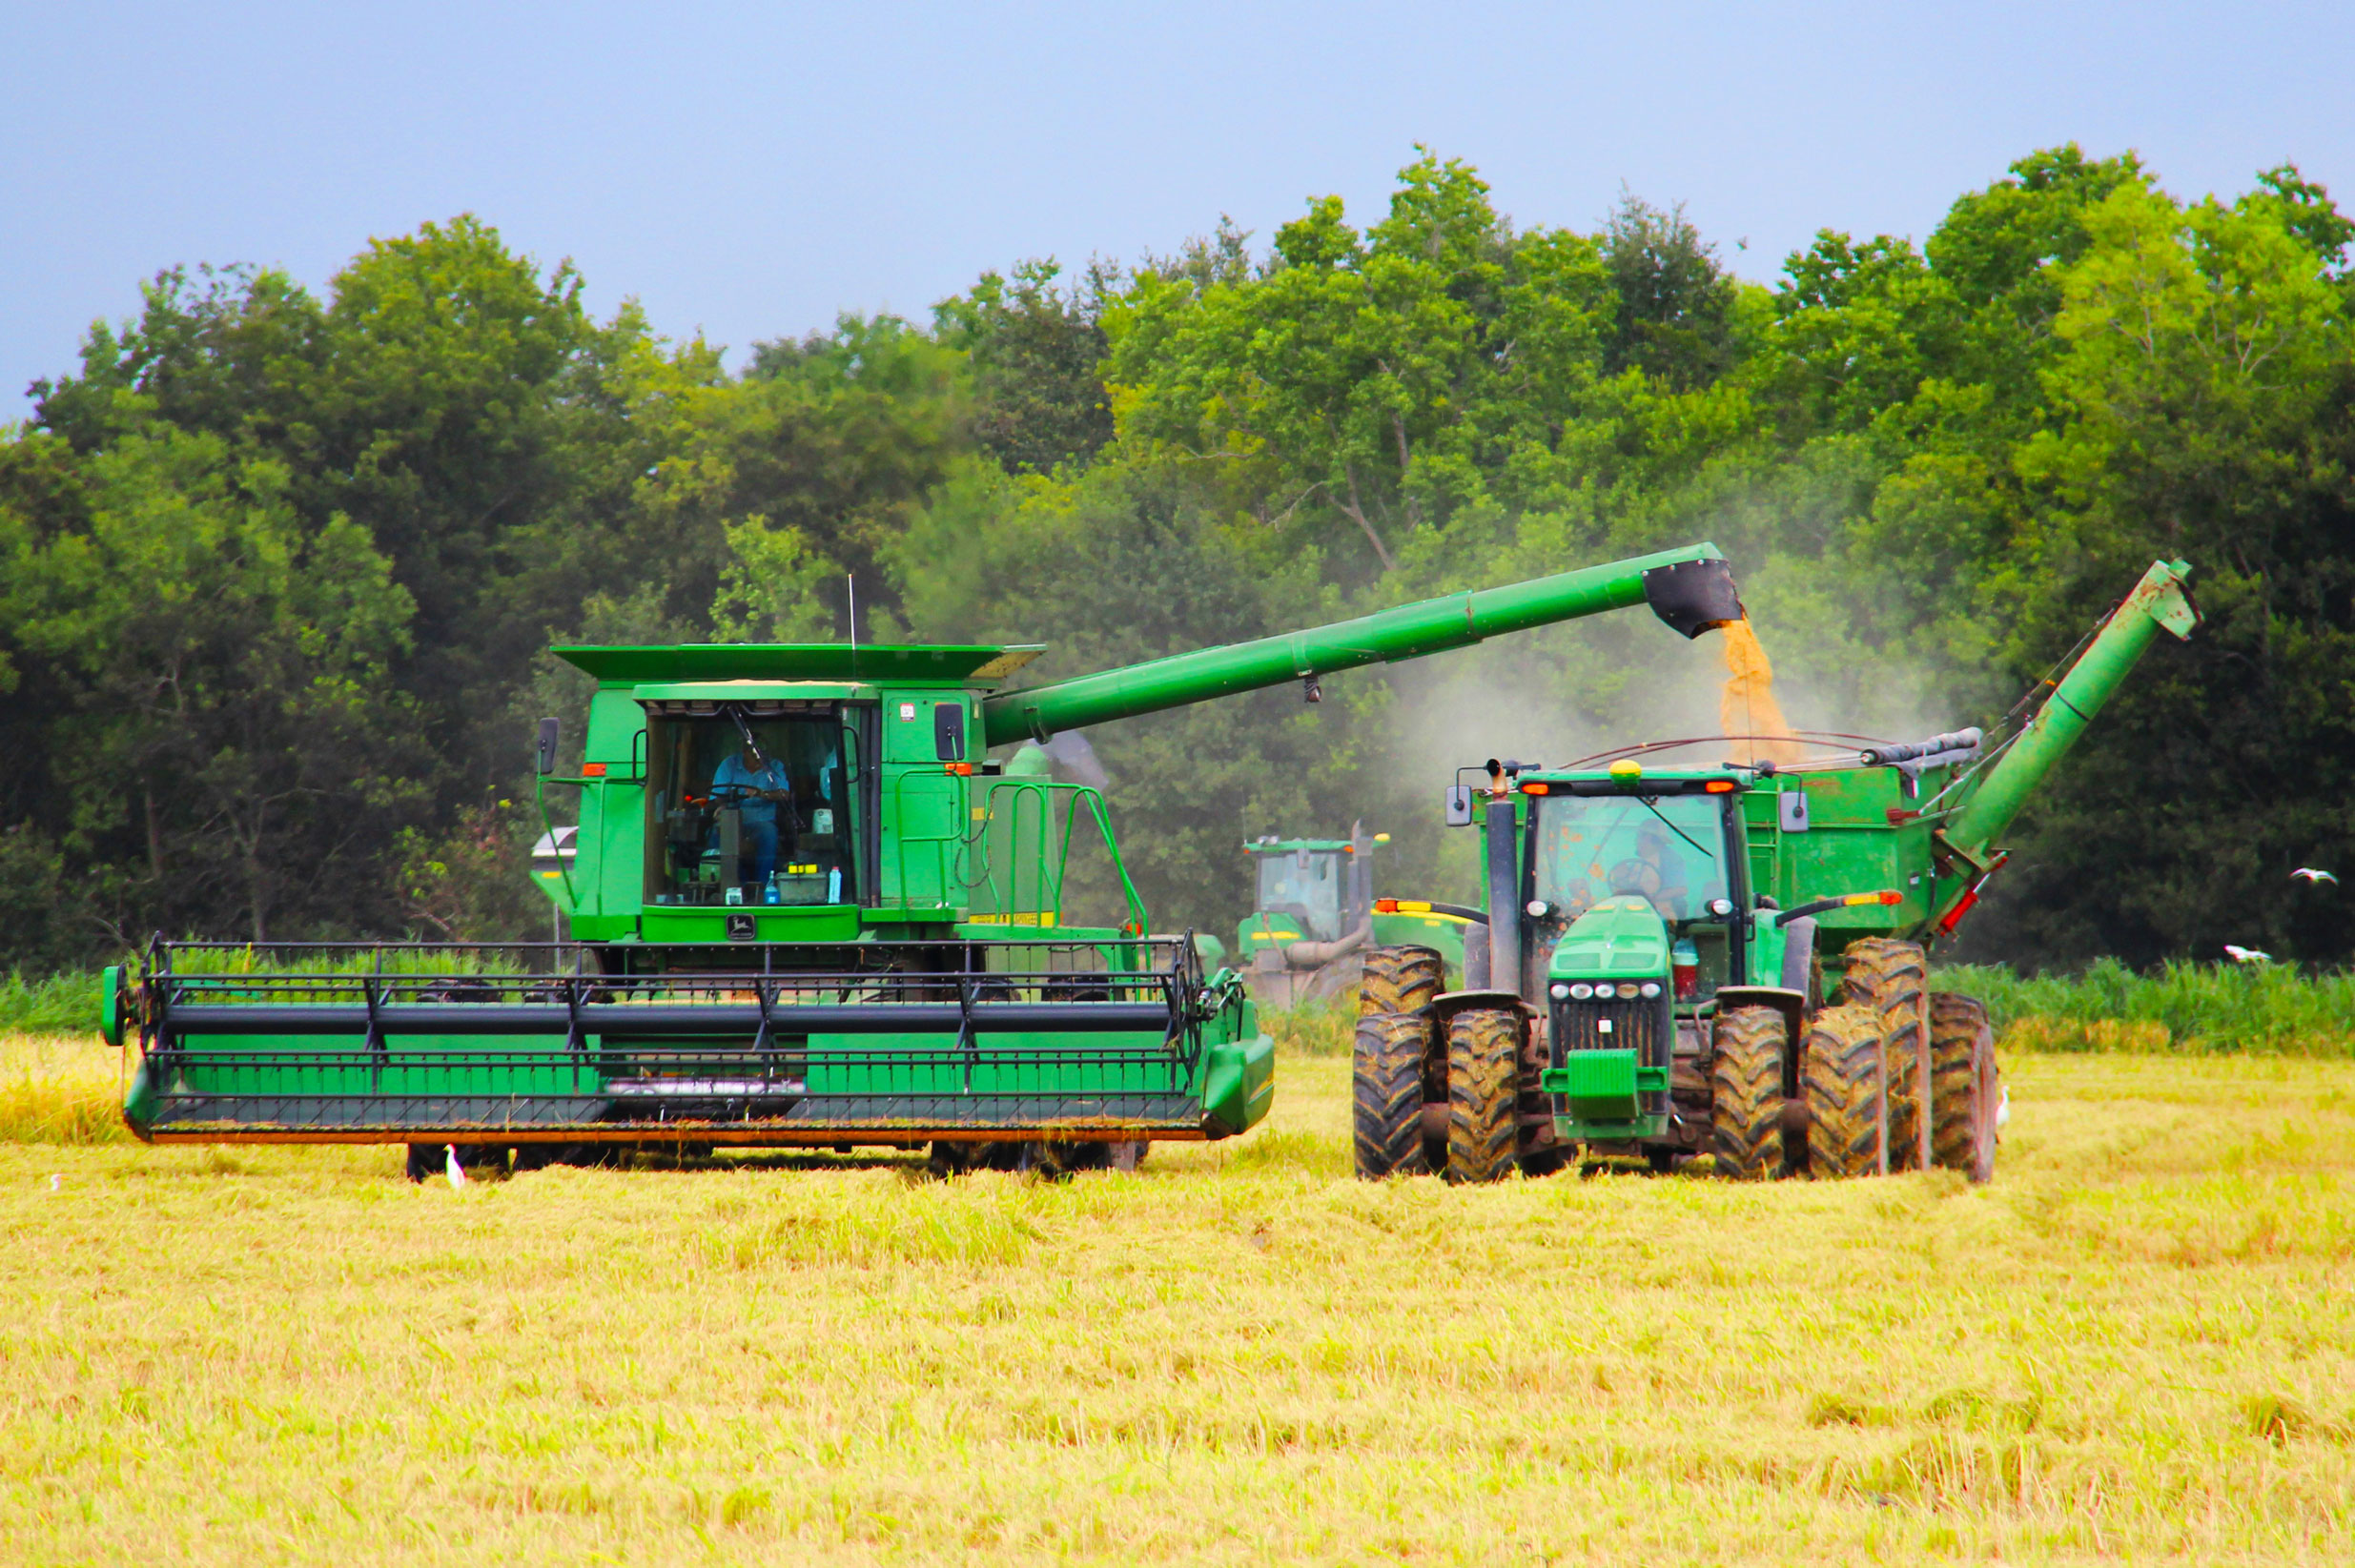 Green combine and grain truck loading harvested rice in yellow field